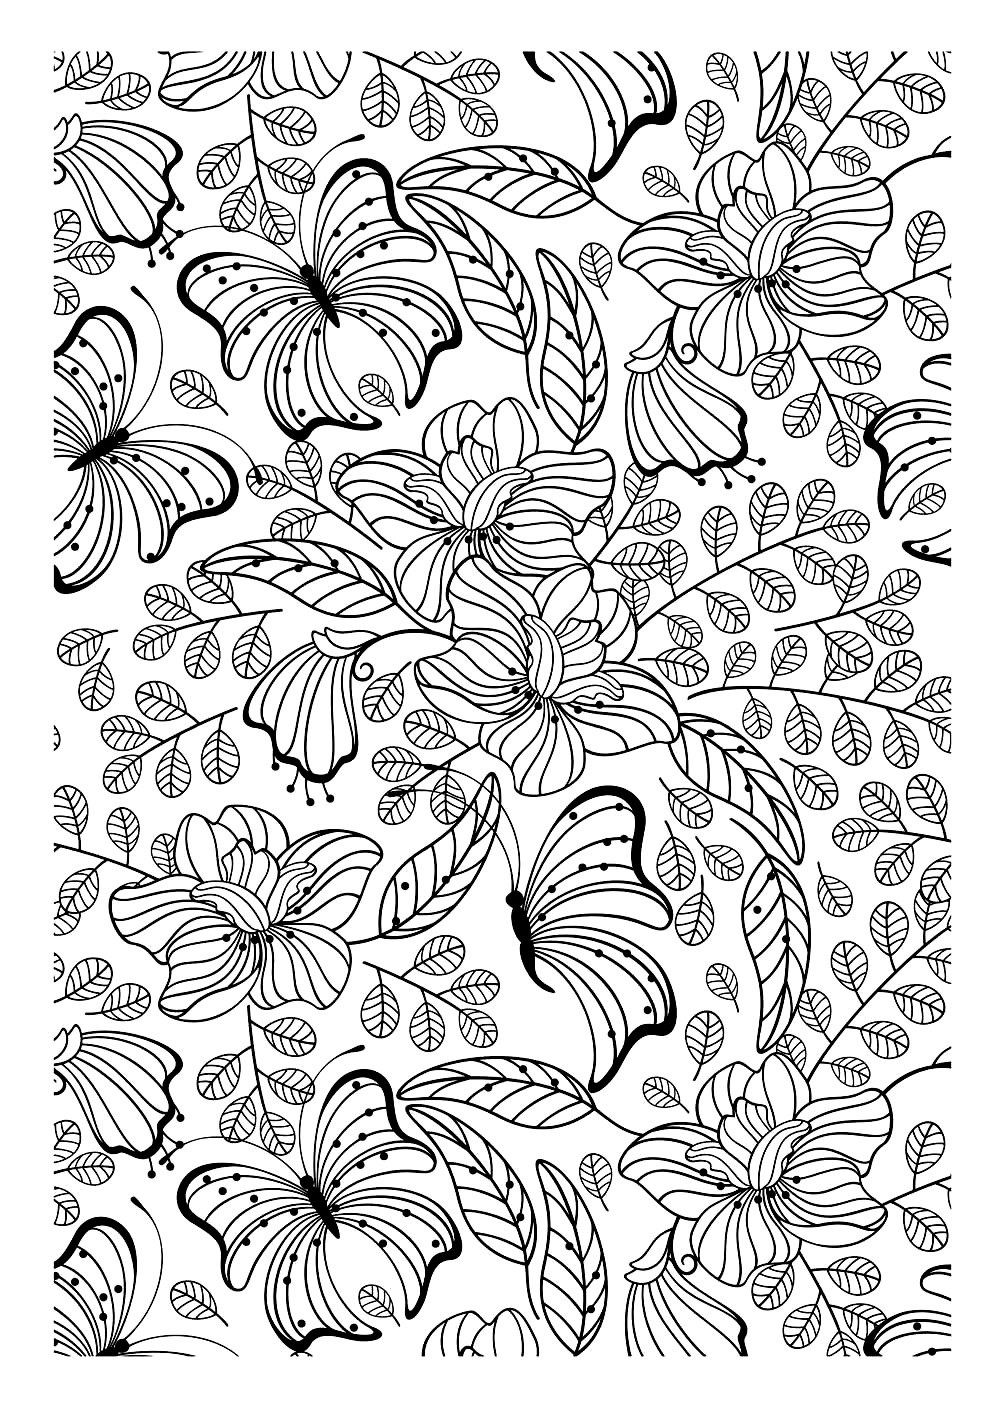 Nature Papillons Difficile Coloriages D Insectes 100 Mandalas Zen Anti Stress